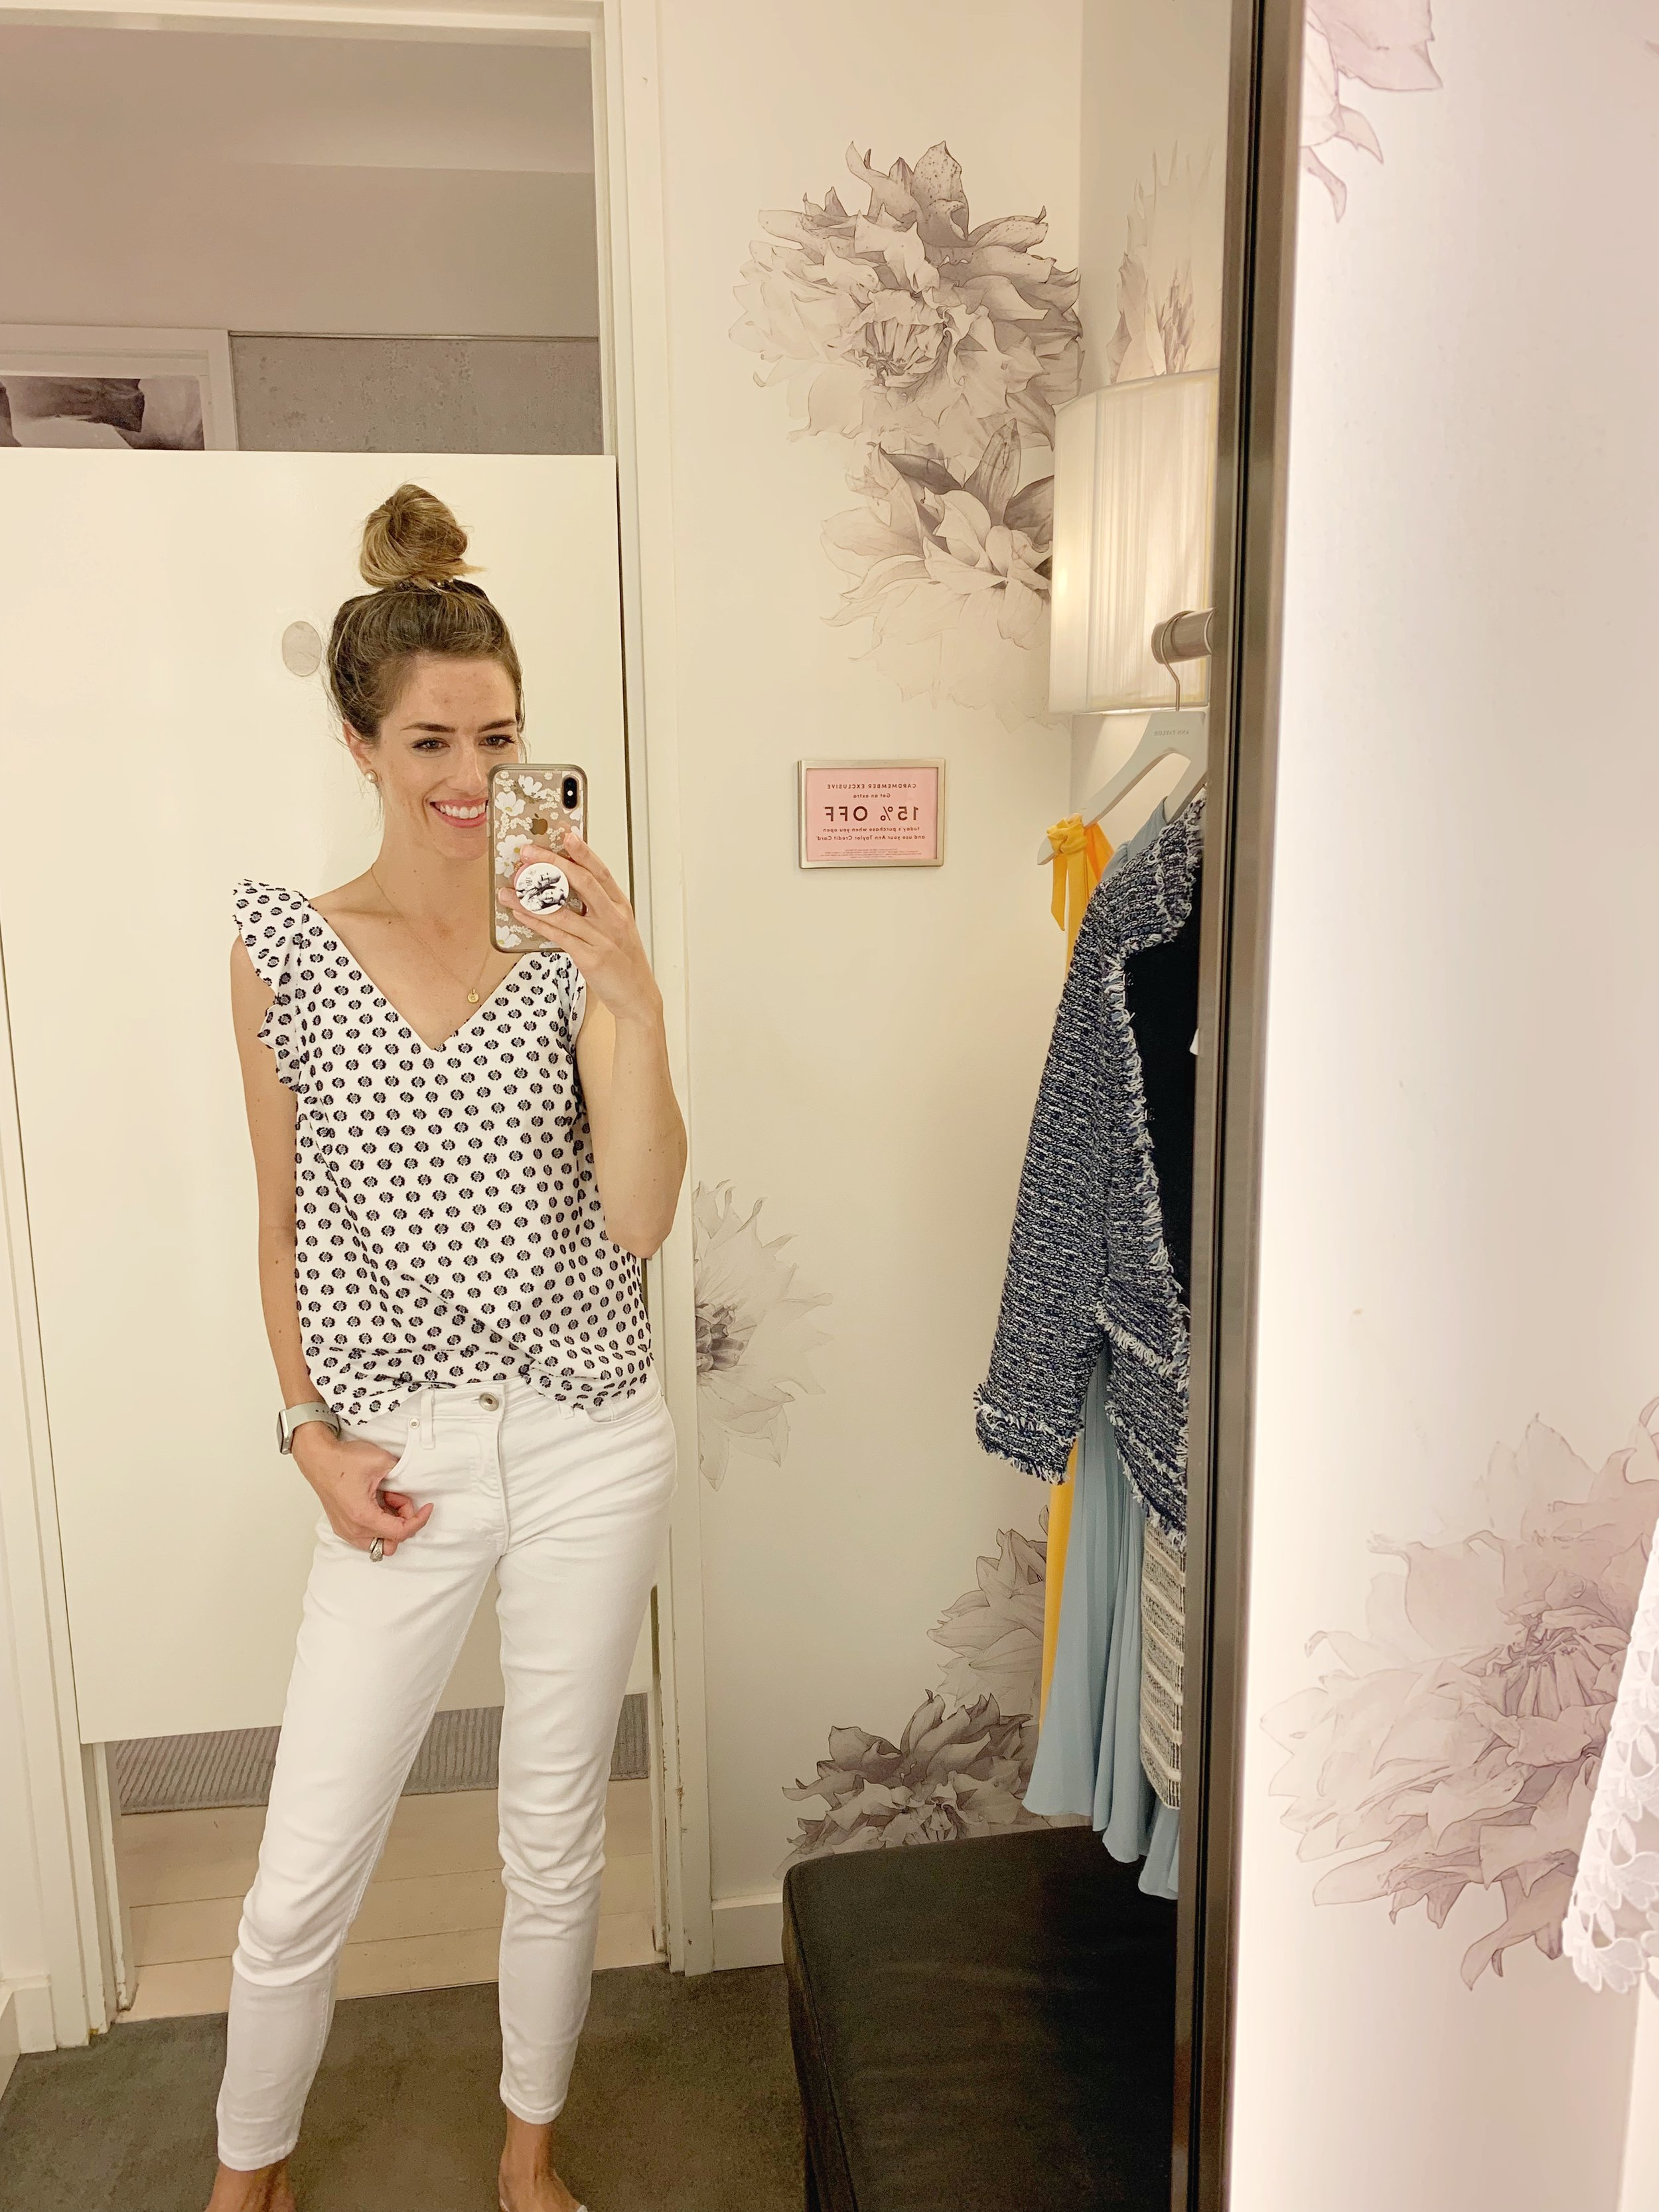 Really liked this top. Its a nice thick material and the dots are textured/raised making it feel like a high quality top. It runs TTS and would look great paired with a chino short, too. Price is $59 plus the additional 50%/60%/70% off depending on how many items you purchase. (70% off is $18)